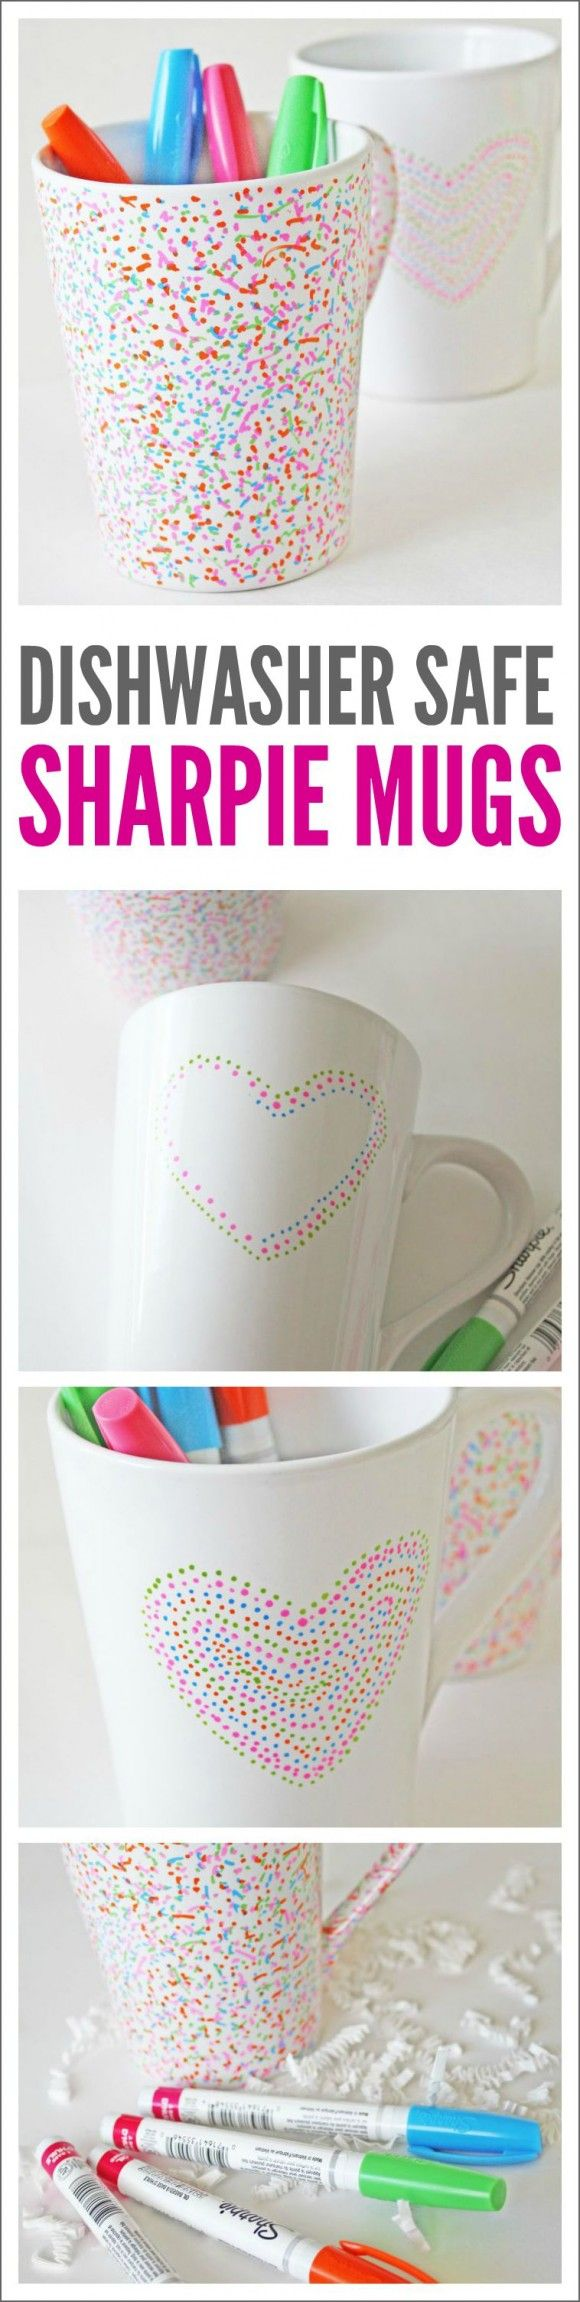 Dishwasher Safe Sharpie Mug DIY. These make great holiday gifts, birthday gifts, teacher gifts, or party favors! After you bake them in the oven, they are perfectly safe to use with food and won't wash off in the dishwasher. See more crafts, party ideas, and DIYs at CatchMyParty.com.